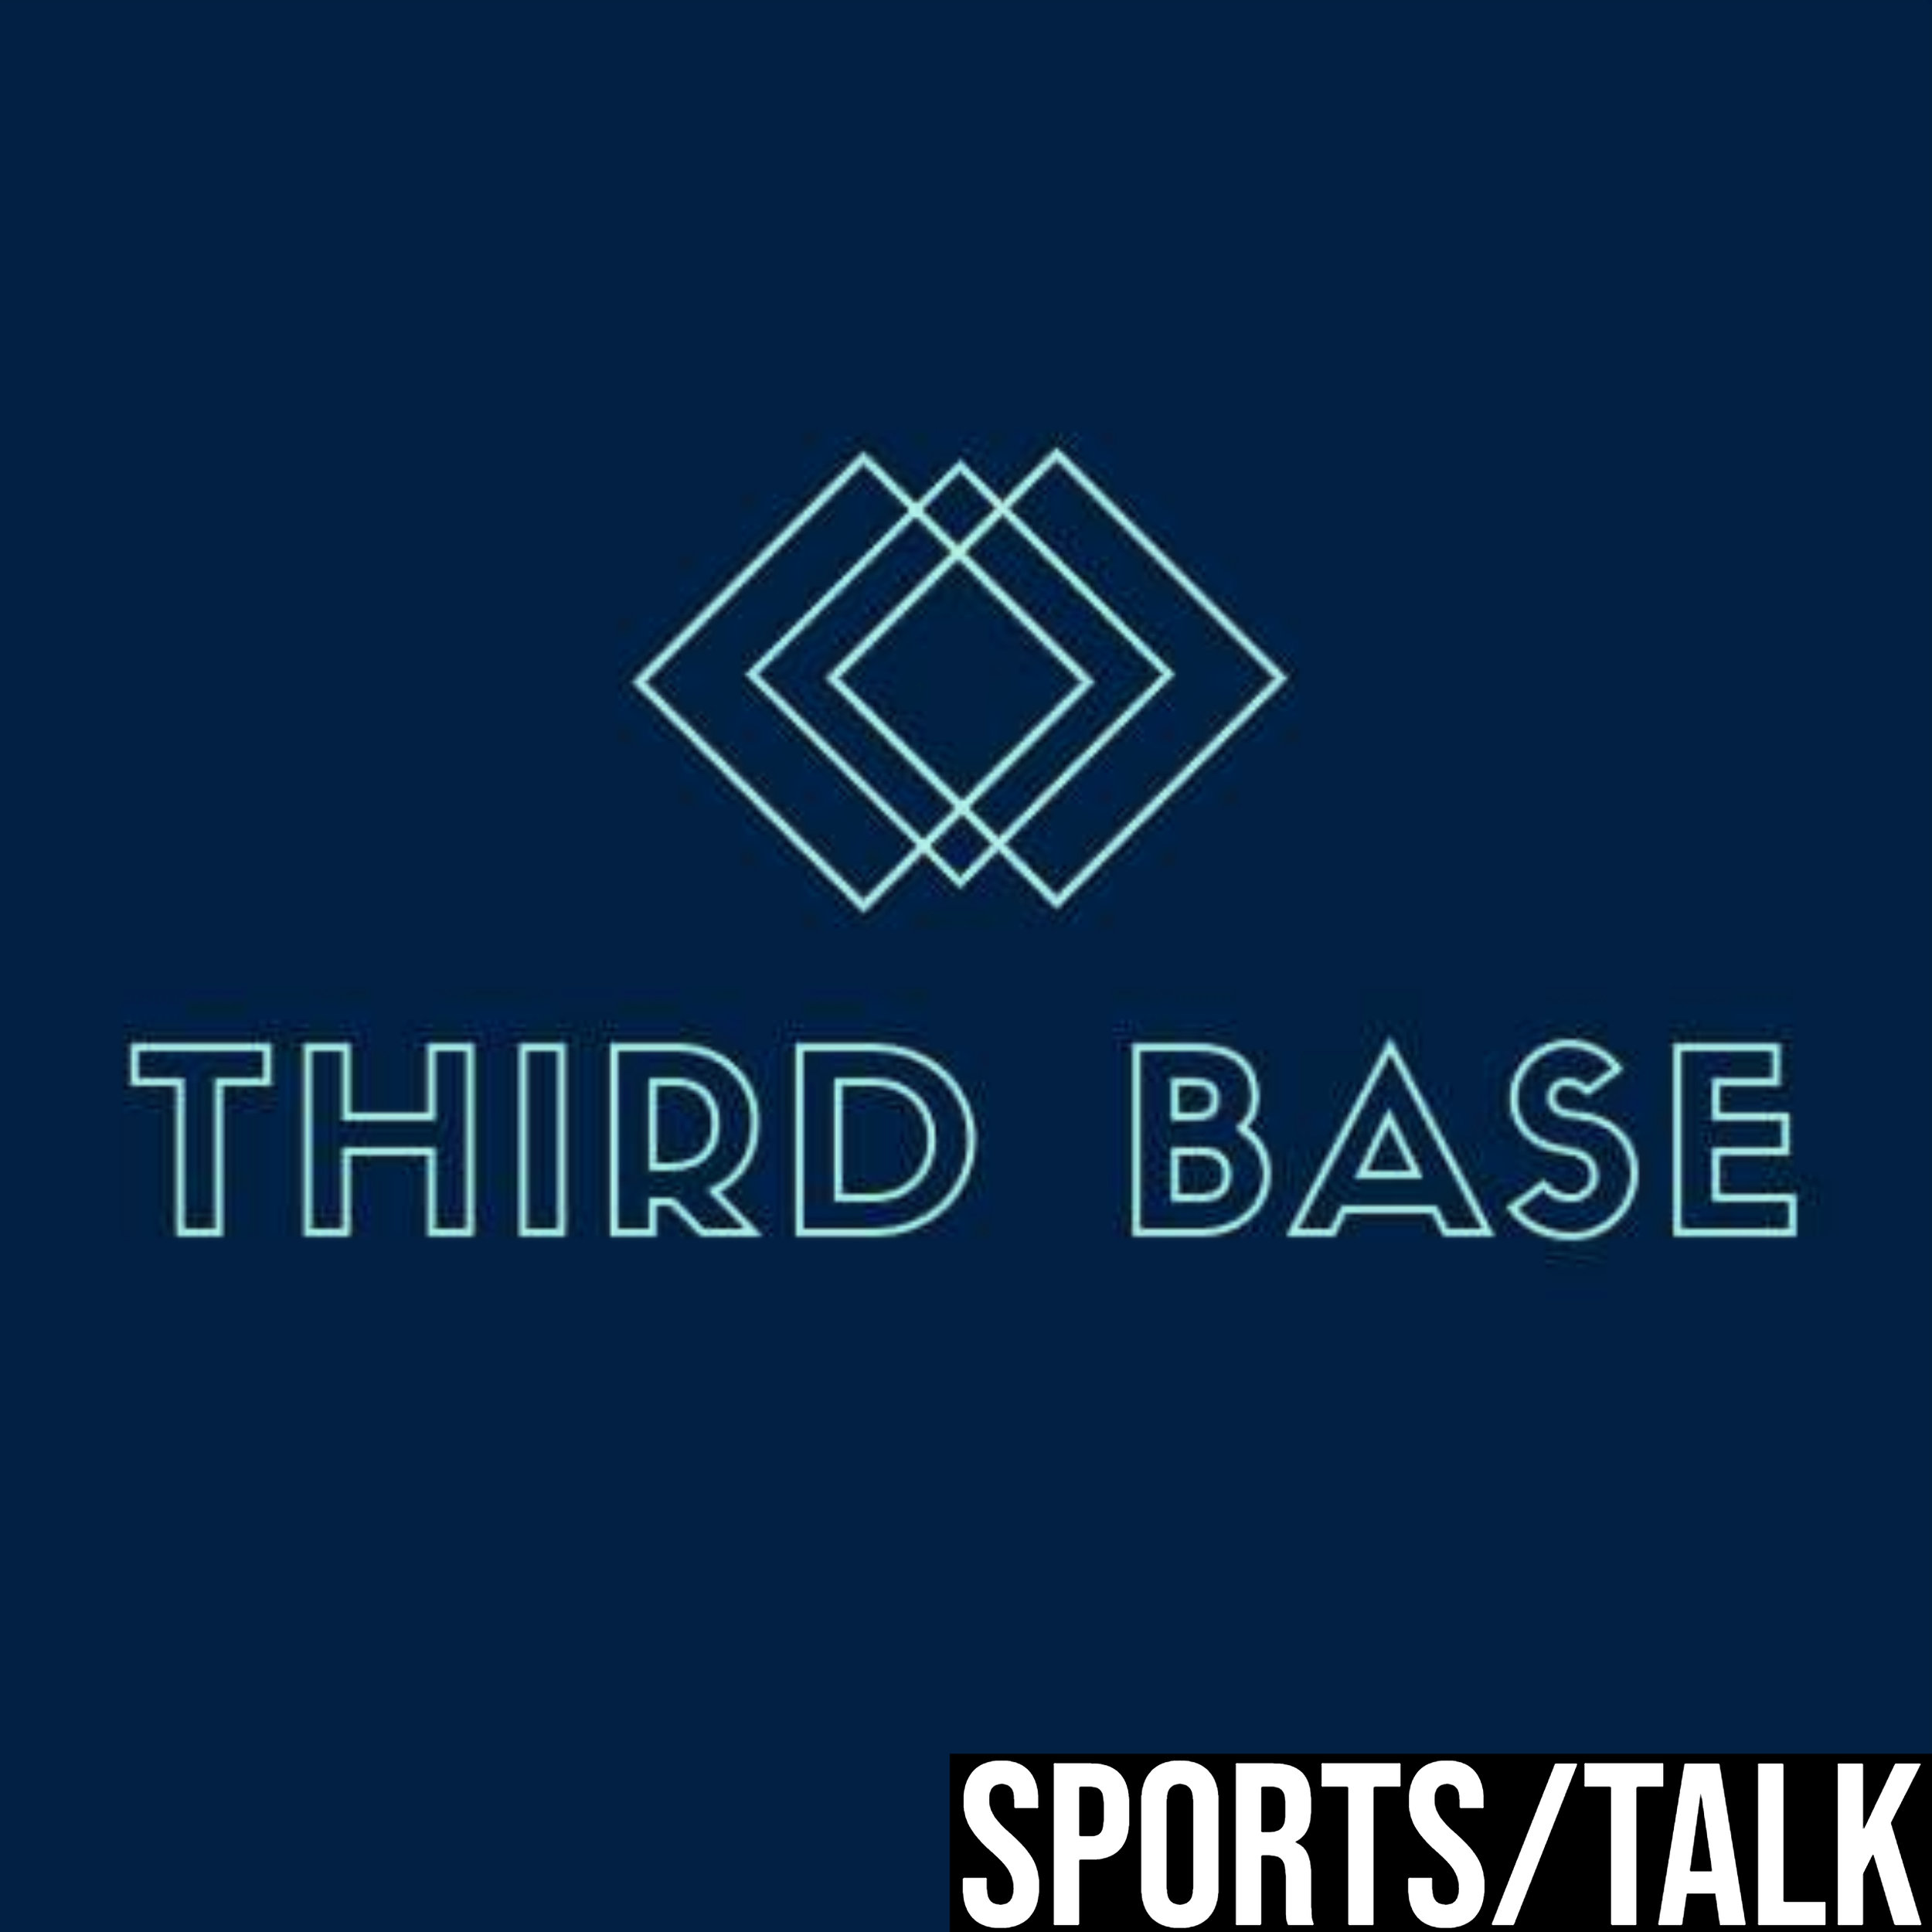 Third Base - Talk 2.jpg